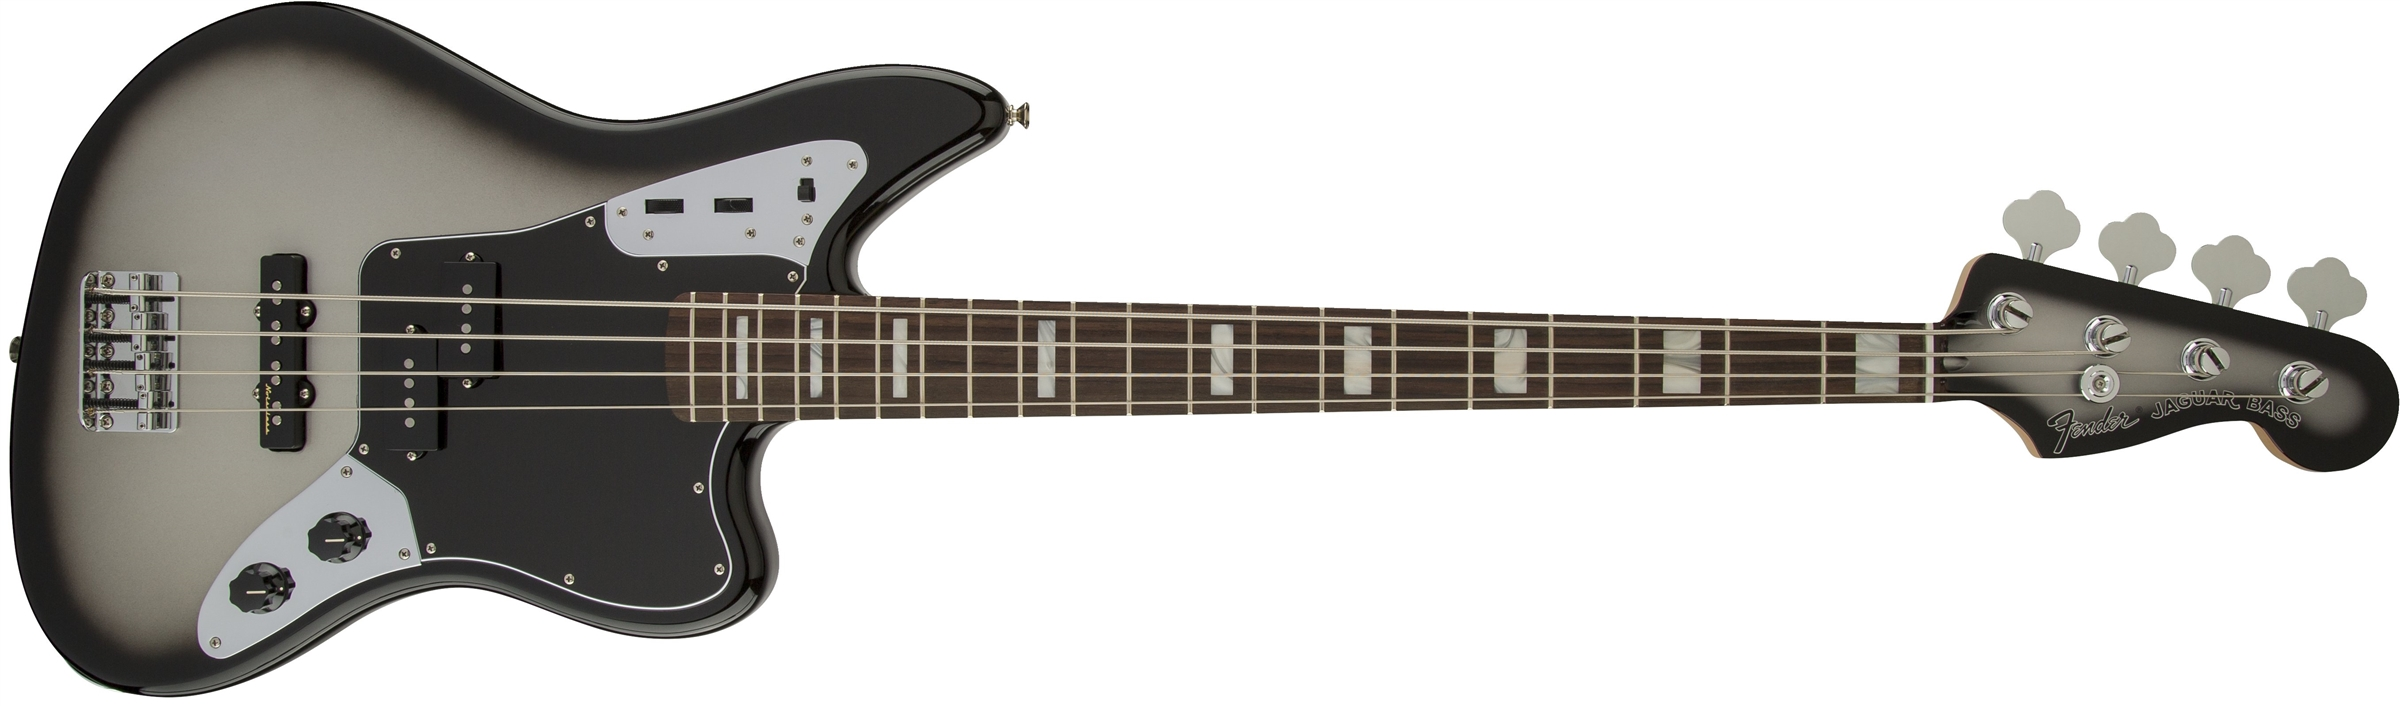 Fender AS Troy Sanders Jaguar RW SIB Silverburst